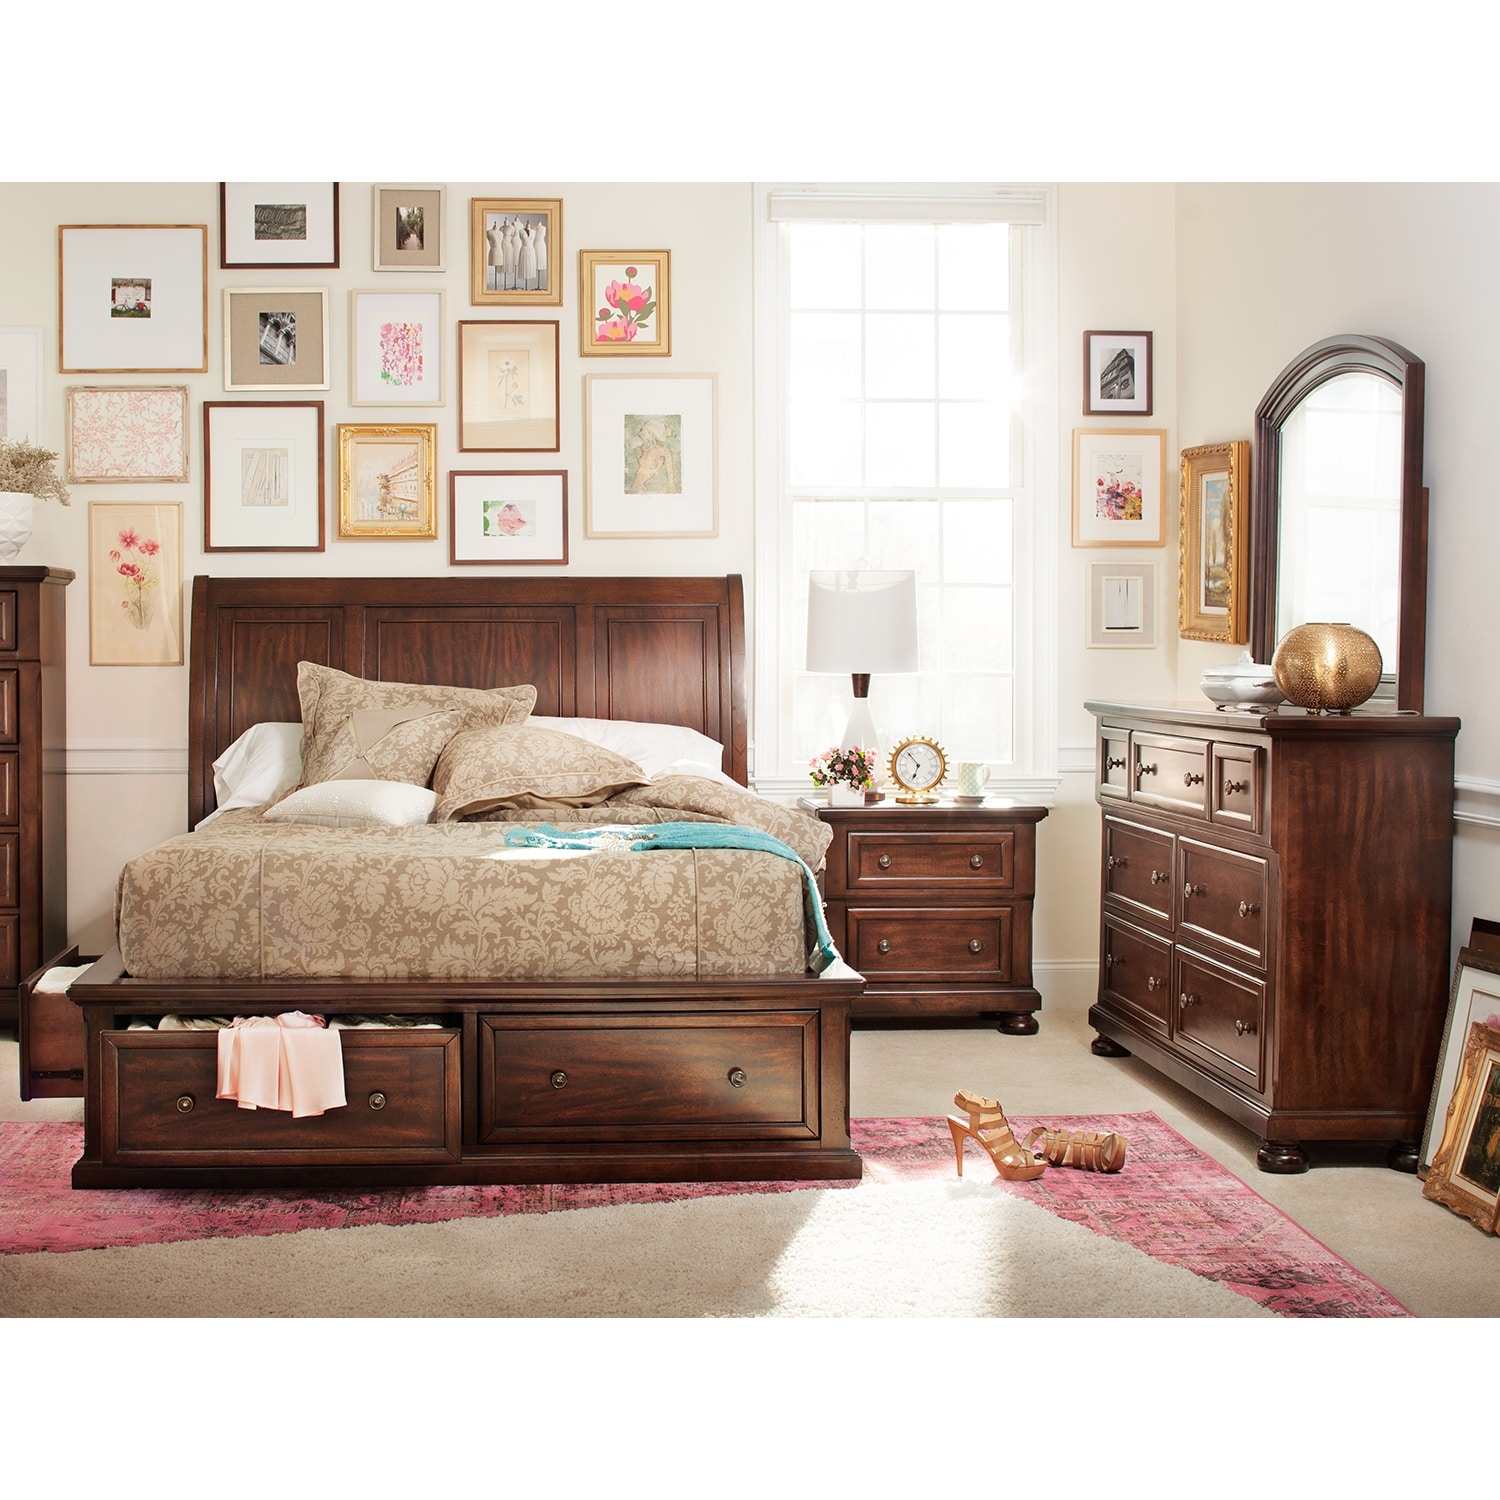 Hanover 6 Pc. King Storage Bedroom